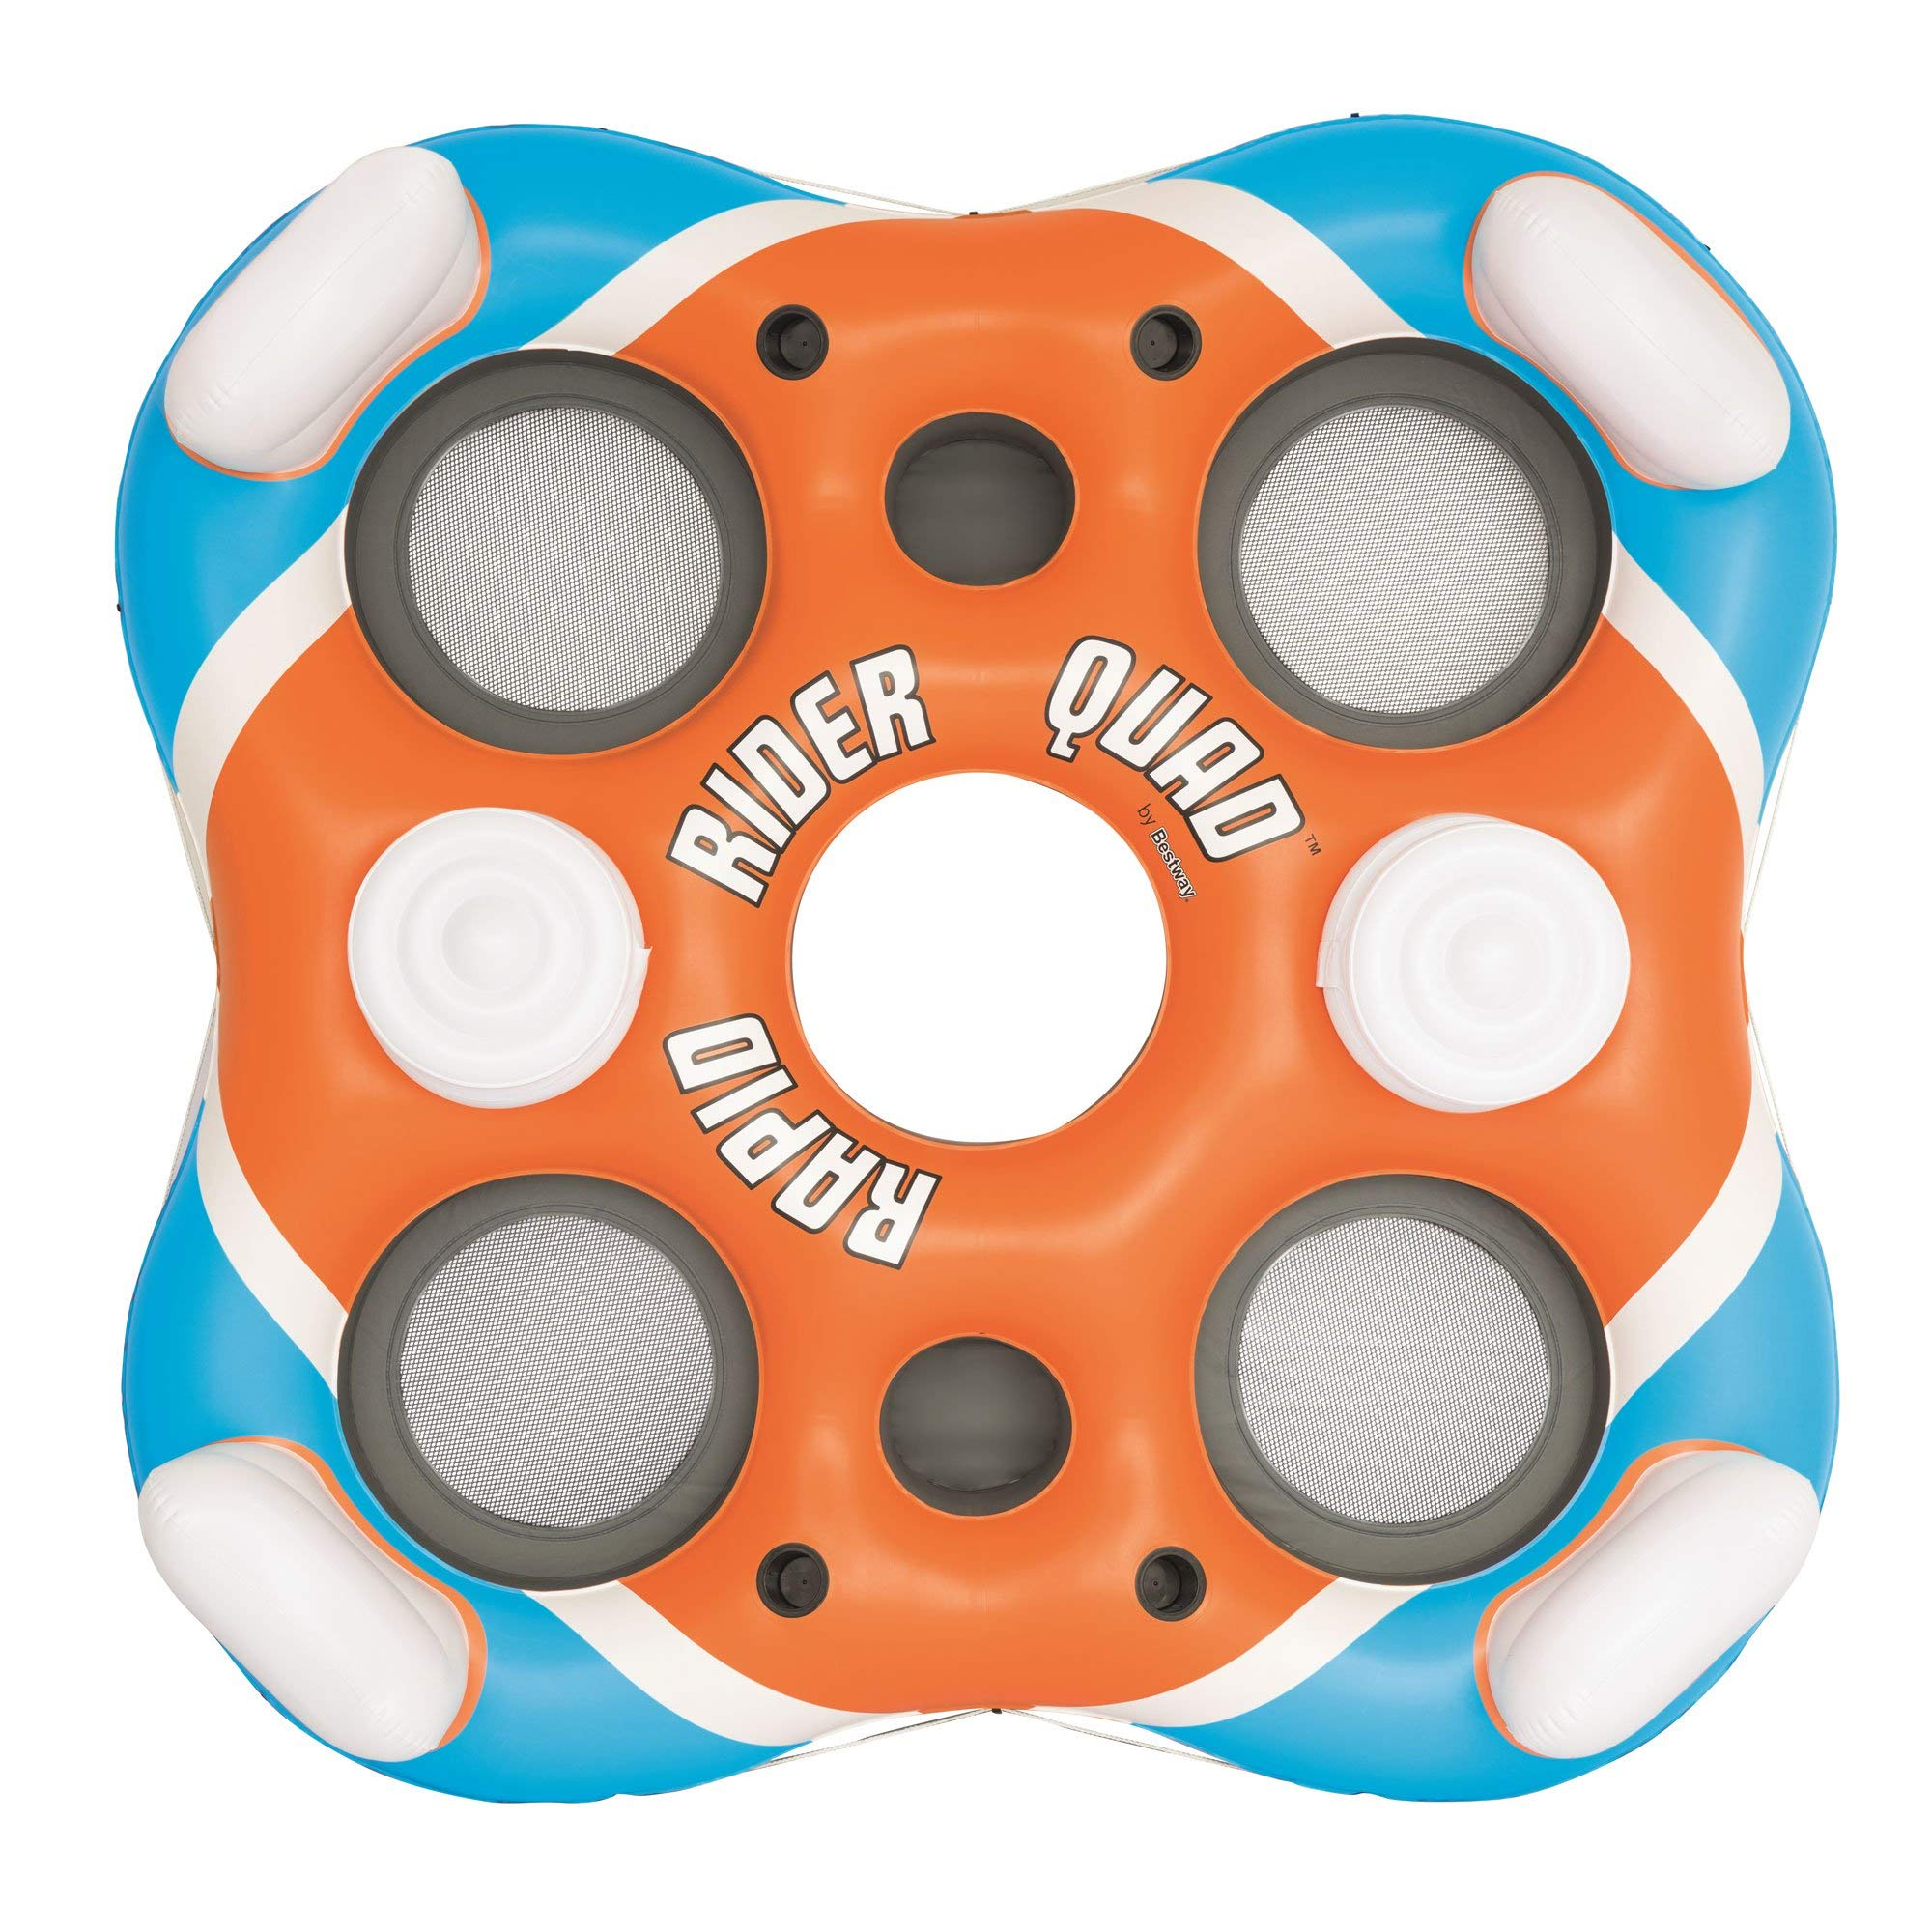 CoolerZ Rapid Rider X4 Inflatable 4-Person Island Tube by Bestway (Image #2)